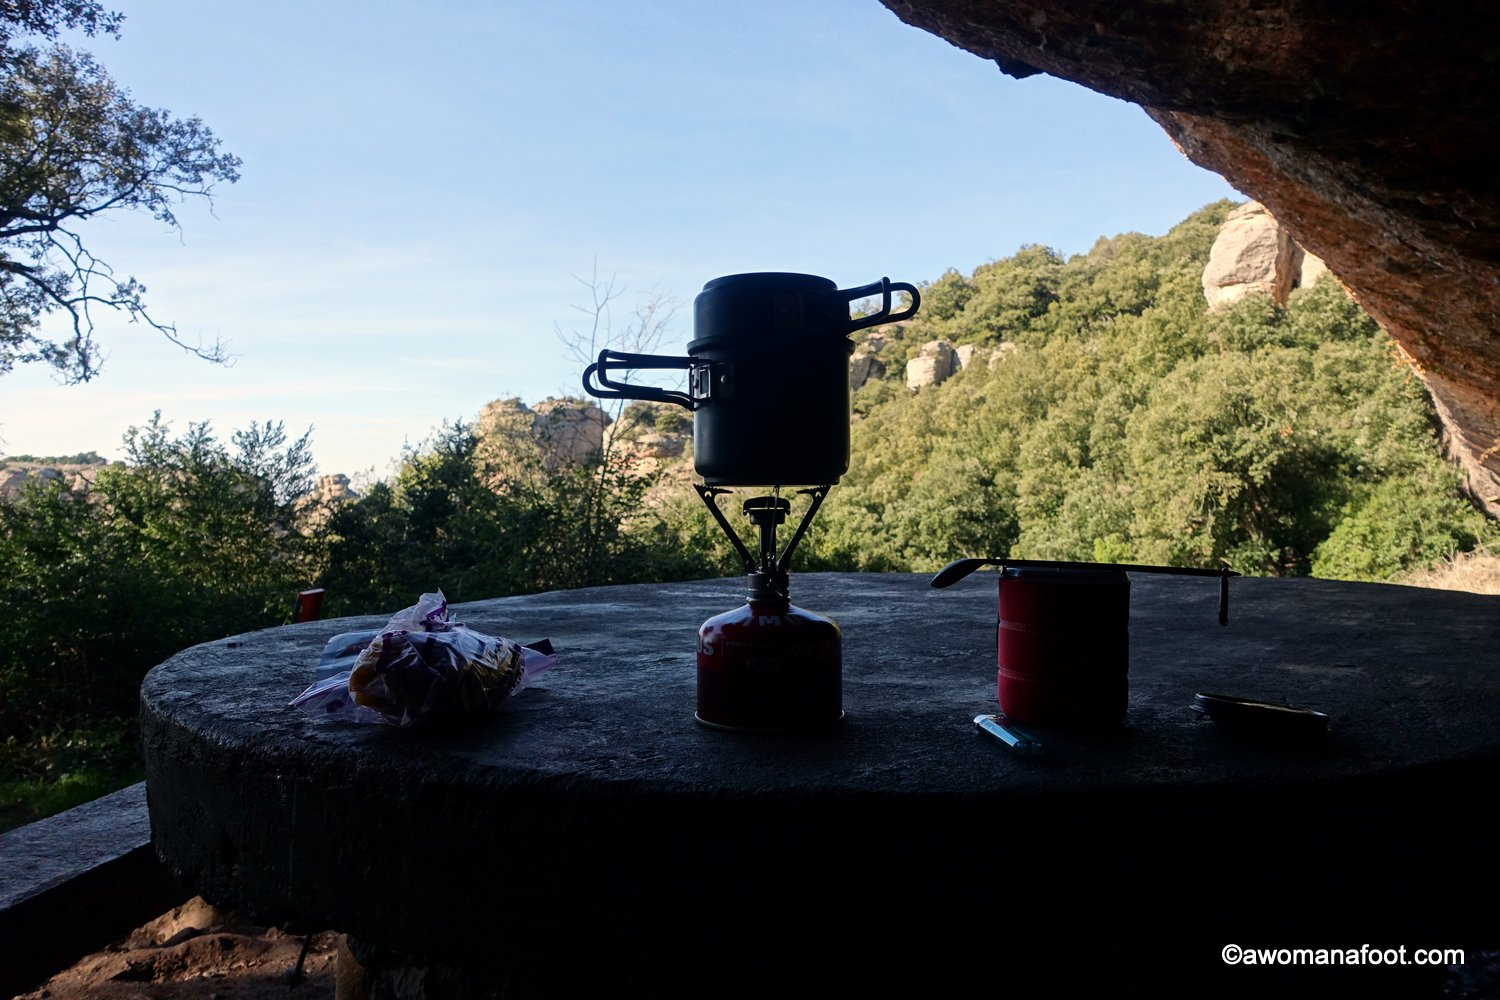 Are you trying to figure out what cooking gear you need for backpacking? I share what works for me - and what I decided to ditch. Check what's my hiking kitchen for tips and ideas and backpacking & camping trips! Learn more hiking and camping tips & awomanafoot.com | What cooking gear do I need? | What's best hiking gear? | Light camping gear | Solo hiking and camping | Minimalist gear choices | Best hiking gear | Camping gear for solo hikers | #hiking #camping #gear #solo #cooking